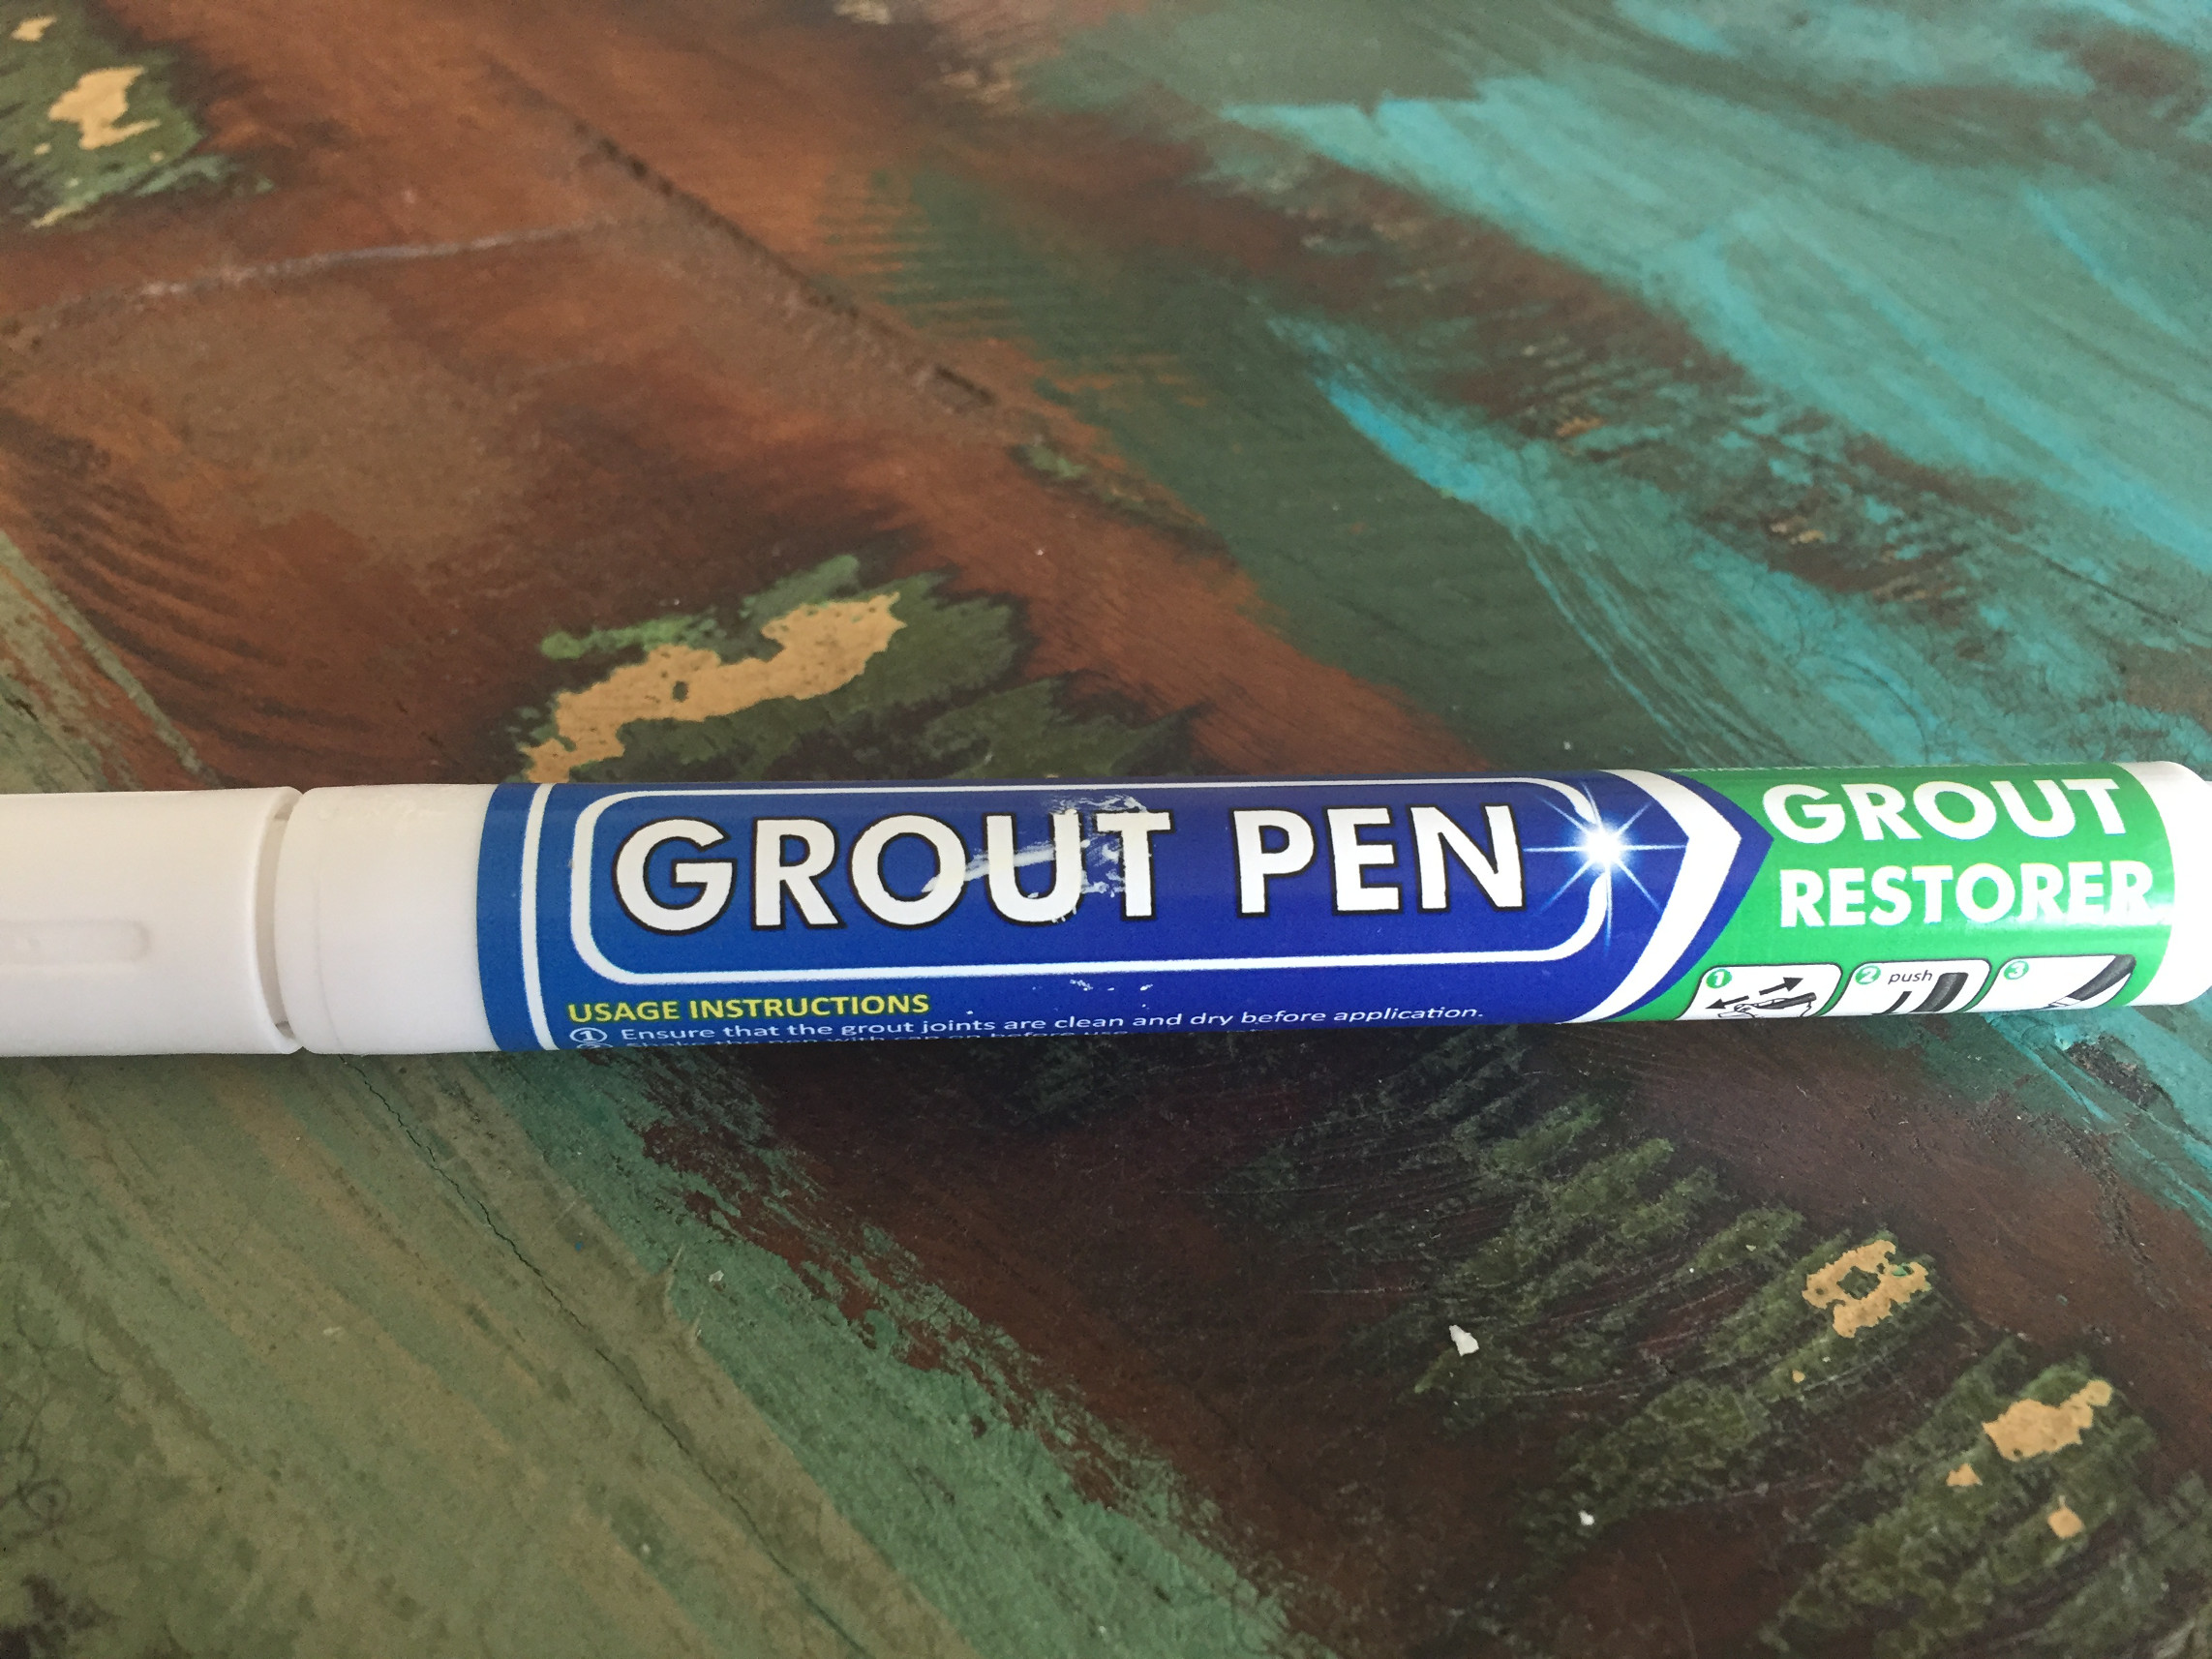 Eash and cheap grout fix, grout pen, coronavirus, home improvement